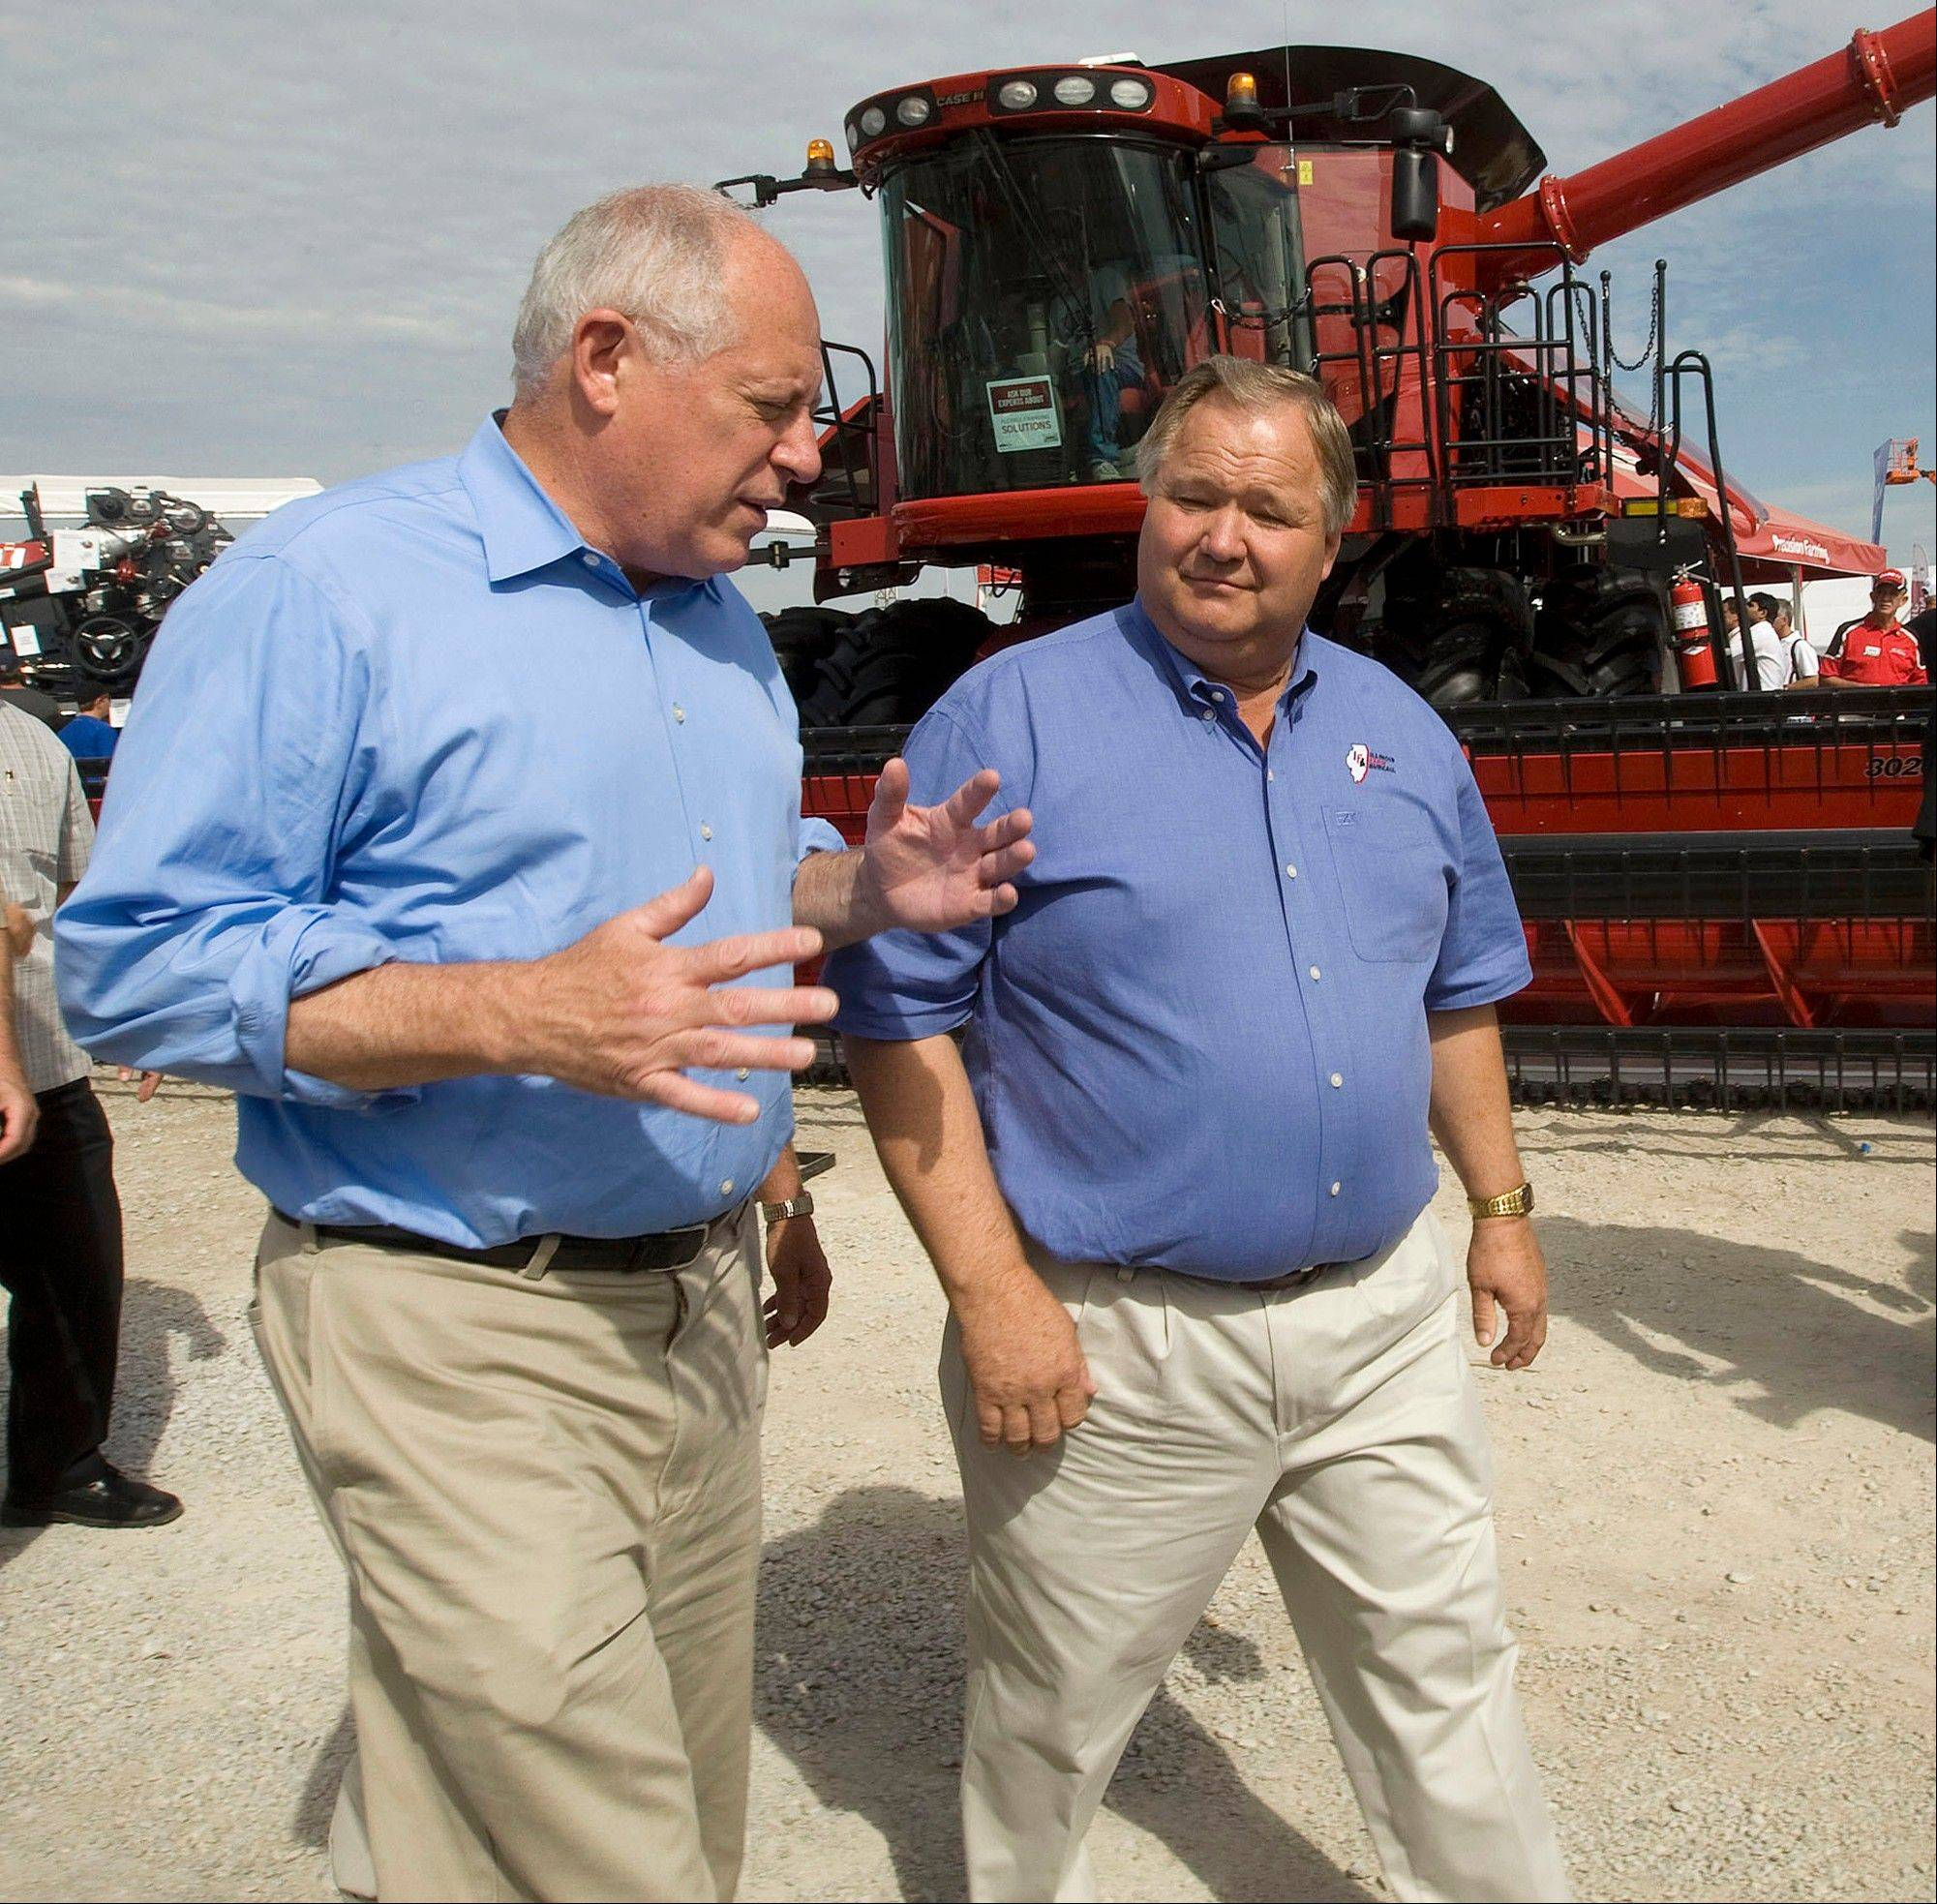 Illinois Gov. Pat Quinn walks with Illinois Farm Bureau President Philip Nelson as they tour the grounds of the 2011 Farm Progress Show in Decatur.